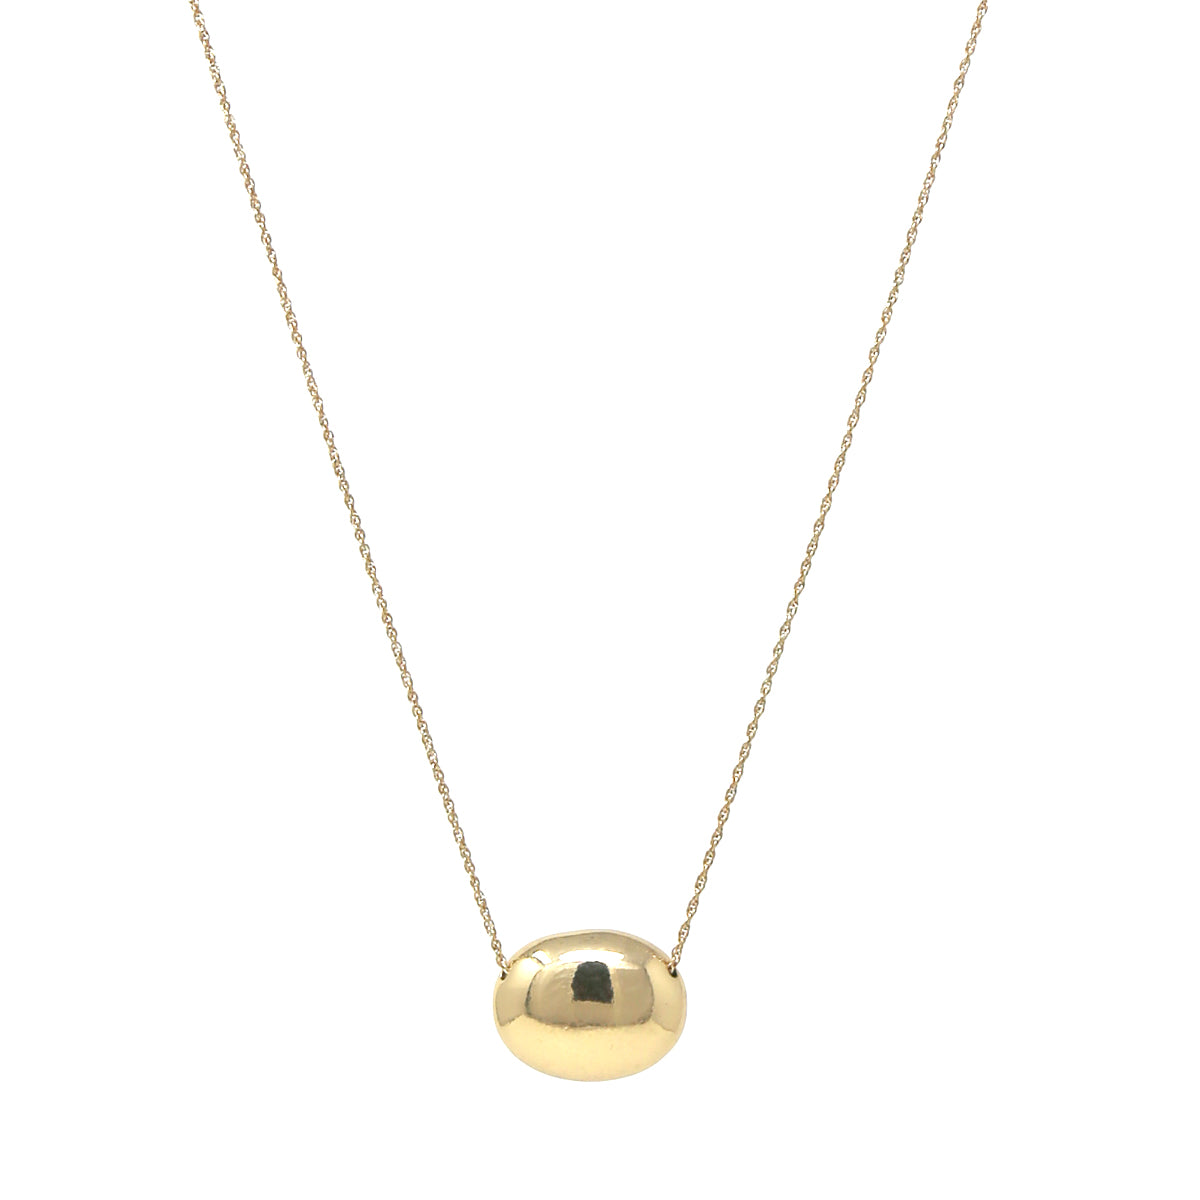 Oval Shape Metal Pendant Long Necklace